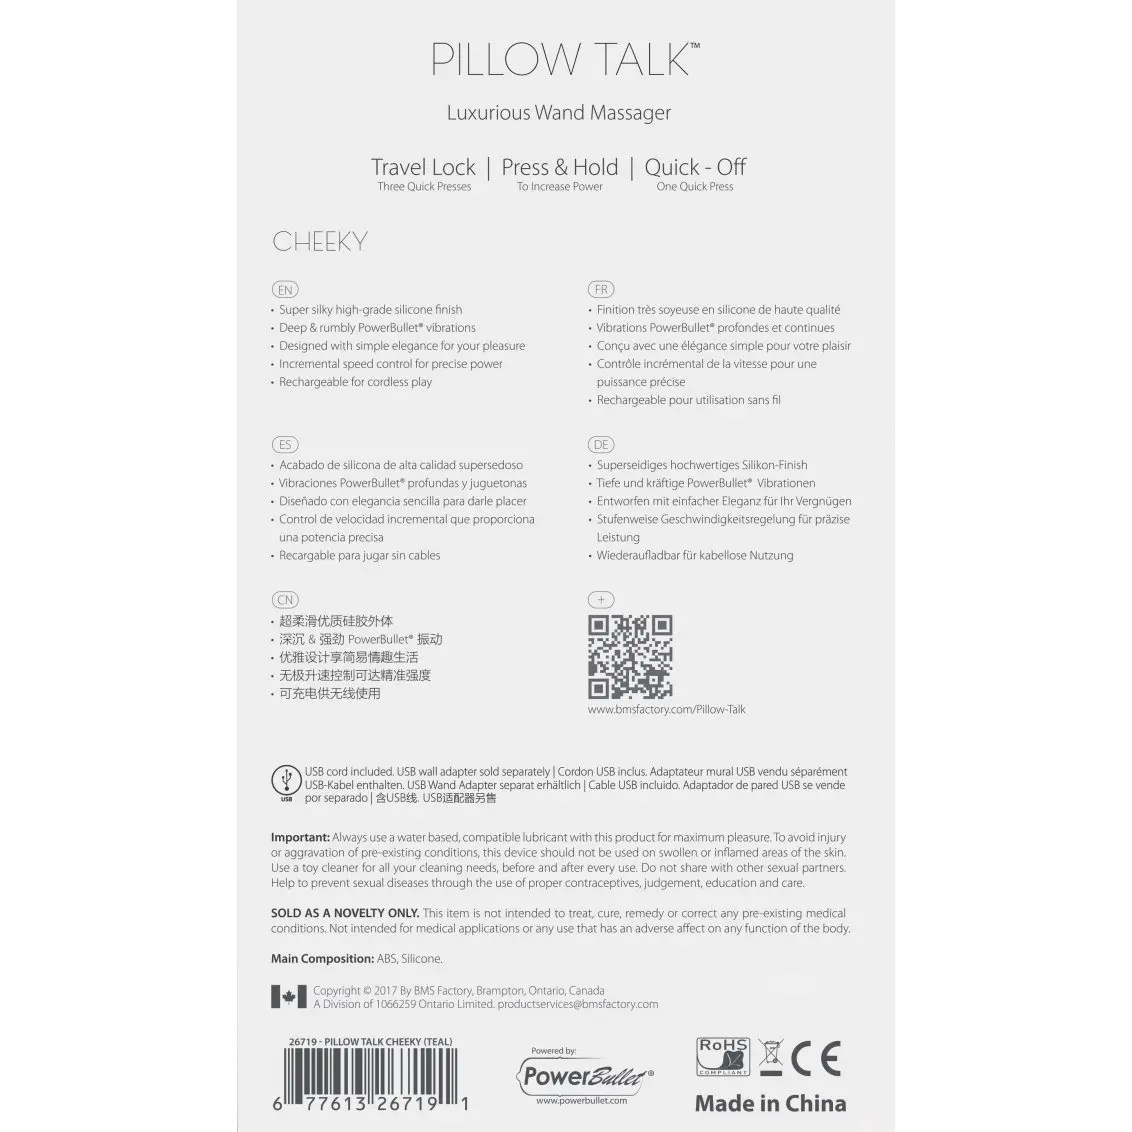 Pillow Talk Cheeky Silicone Rechargeable Wand Massager